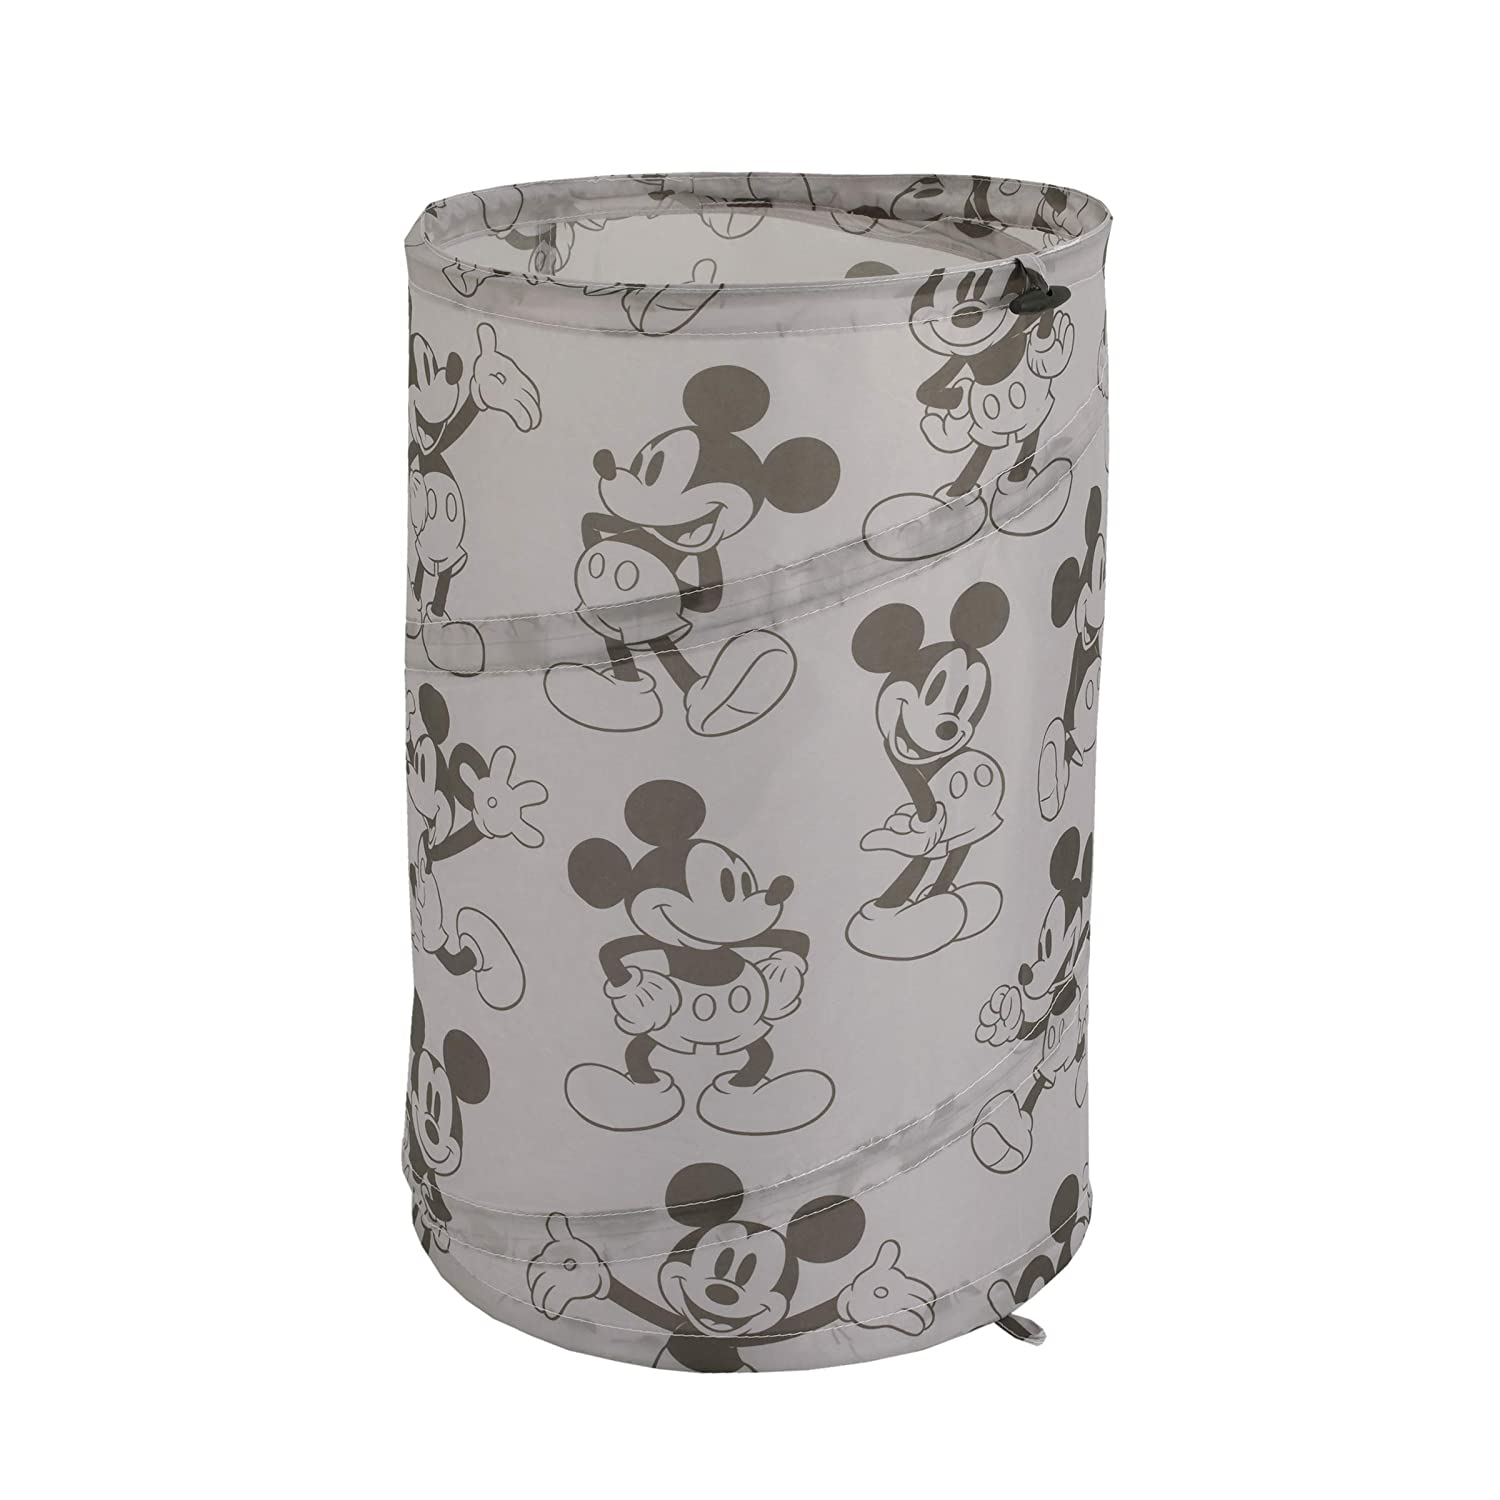 Disney Mickey Mouse Round Pop-Up Hamper, Grey/Black